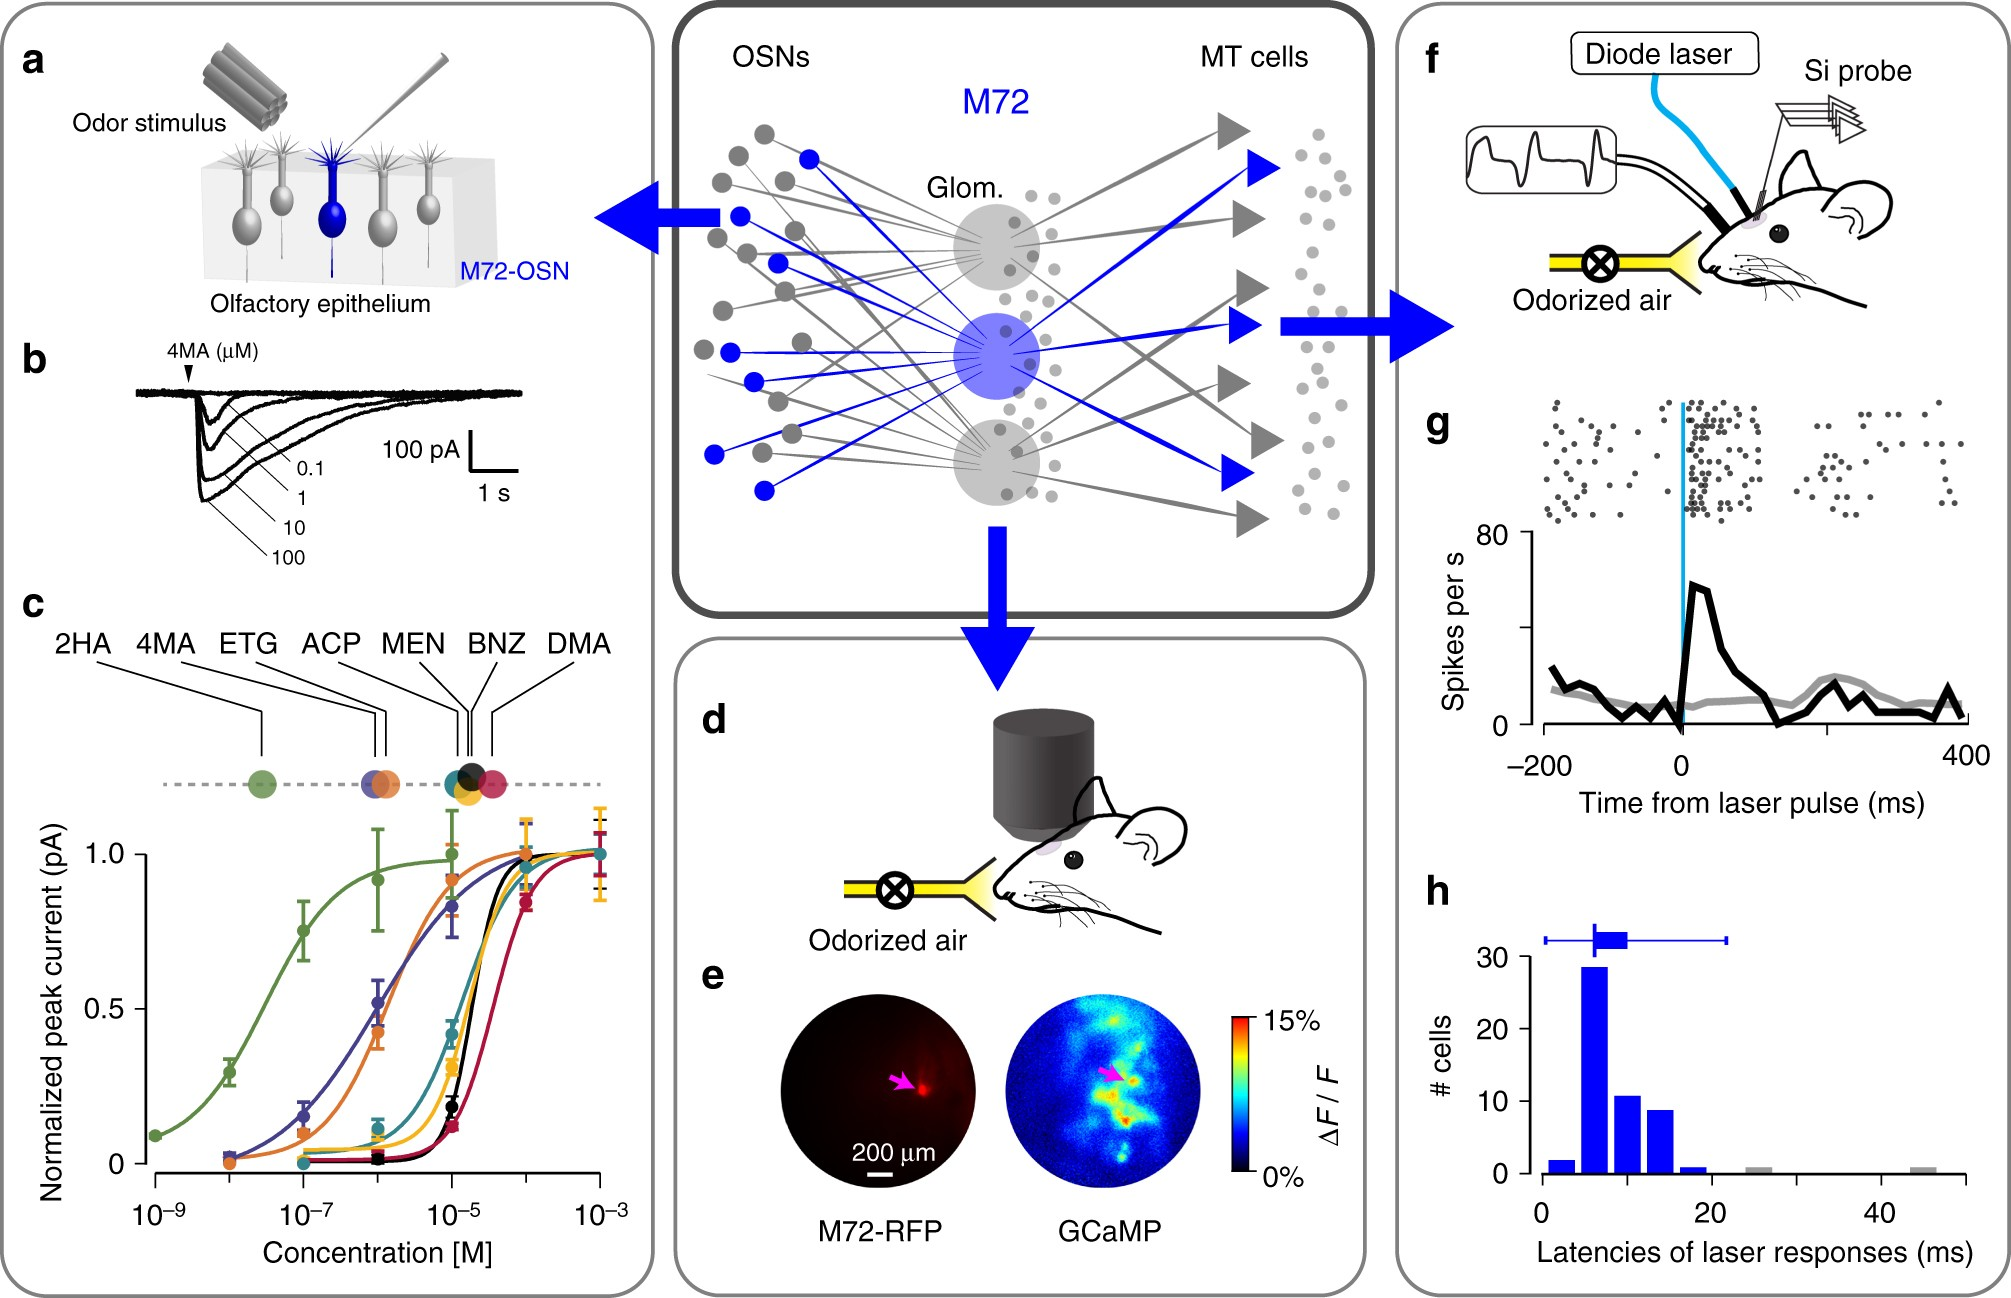 Stimulus Dependent Diversity And Stereotypy In The Output Of An Drawing Pid Electrical Single Line Electronic Block Diagram Olfactory Functional Unit Nature Communications